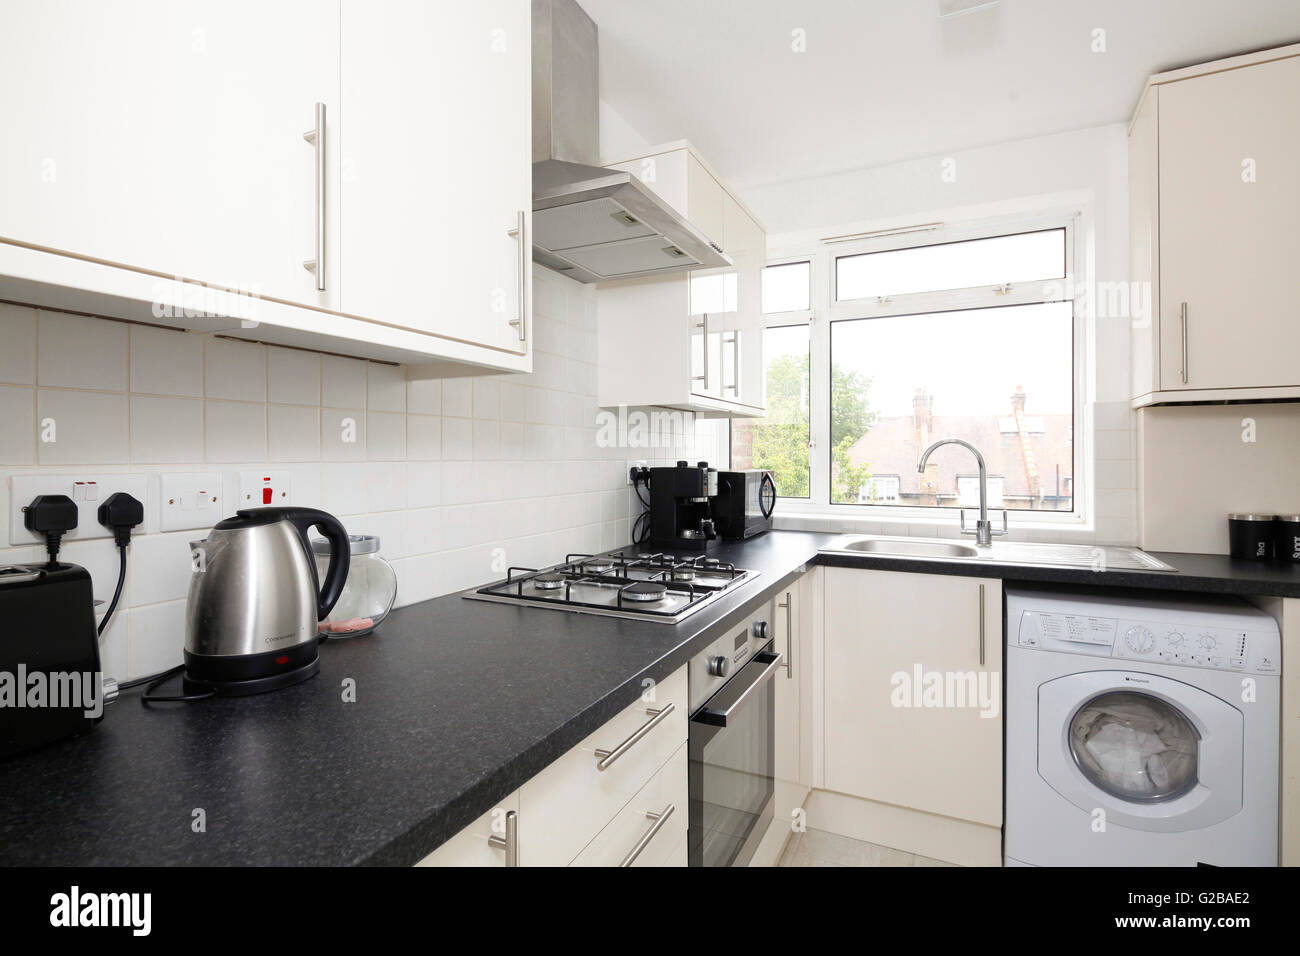 Ellington Court, Southgate. Clean modern kitchen with stainless ...